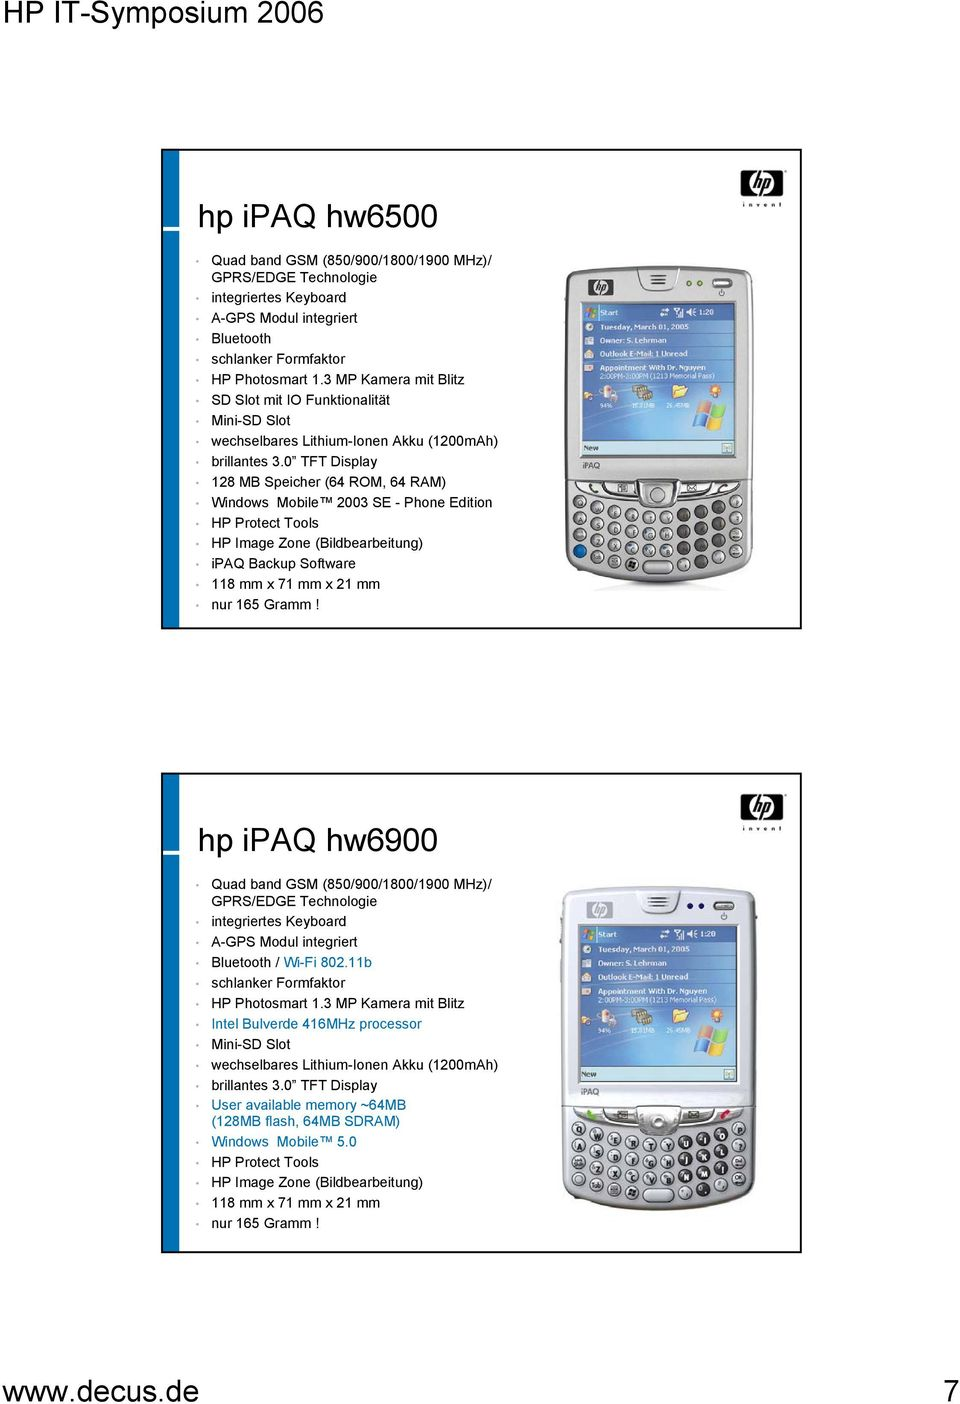 0 TFT Display 128 MB Speicher (64 ROM, 64 RAM) Windows Mobile 2003 SE - Phone Edition HP Protect Tools HP Image Zone (Bildbearbeitung) ipaq Backup Software 118 mm x 71 mm x 21 mm nur 165 Gramm!